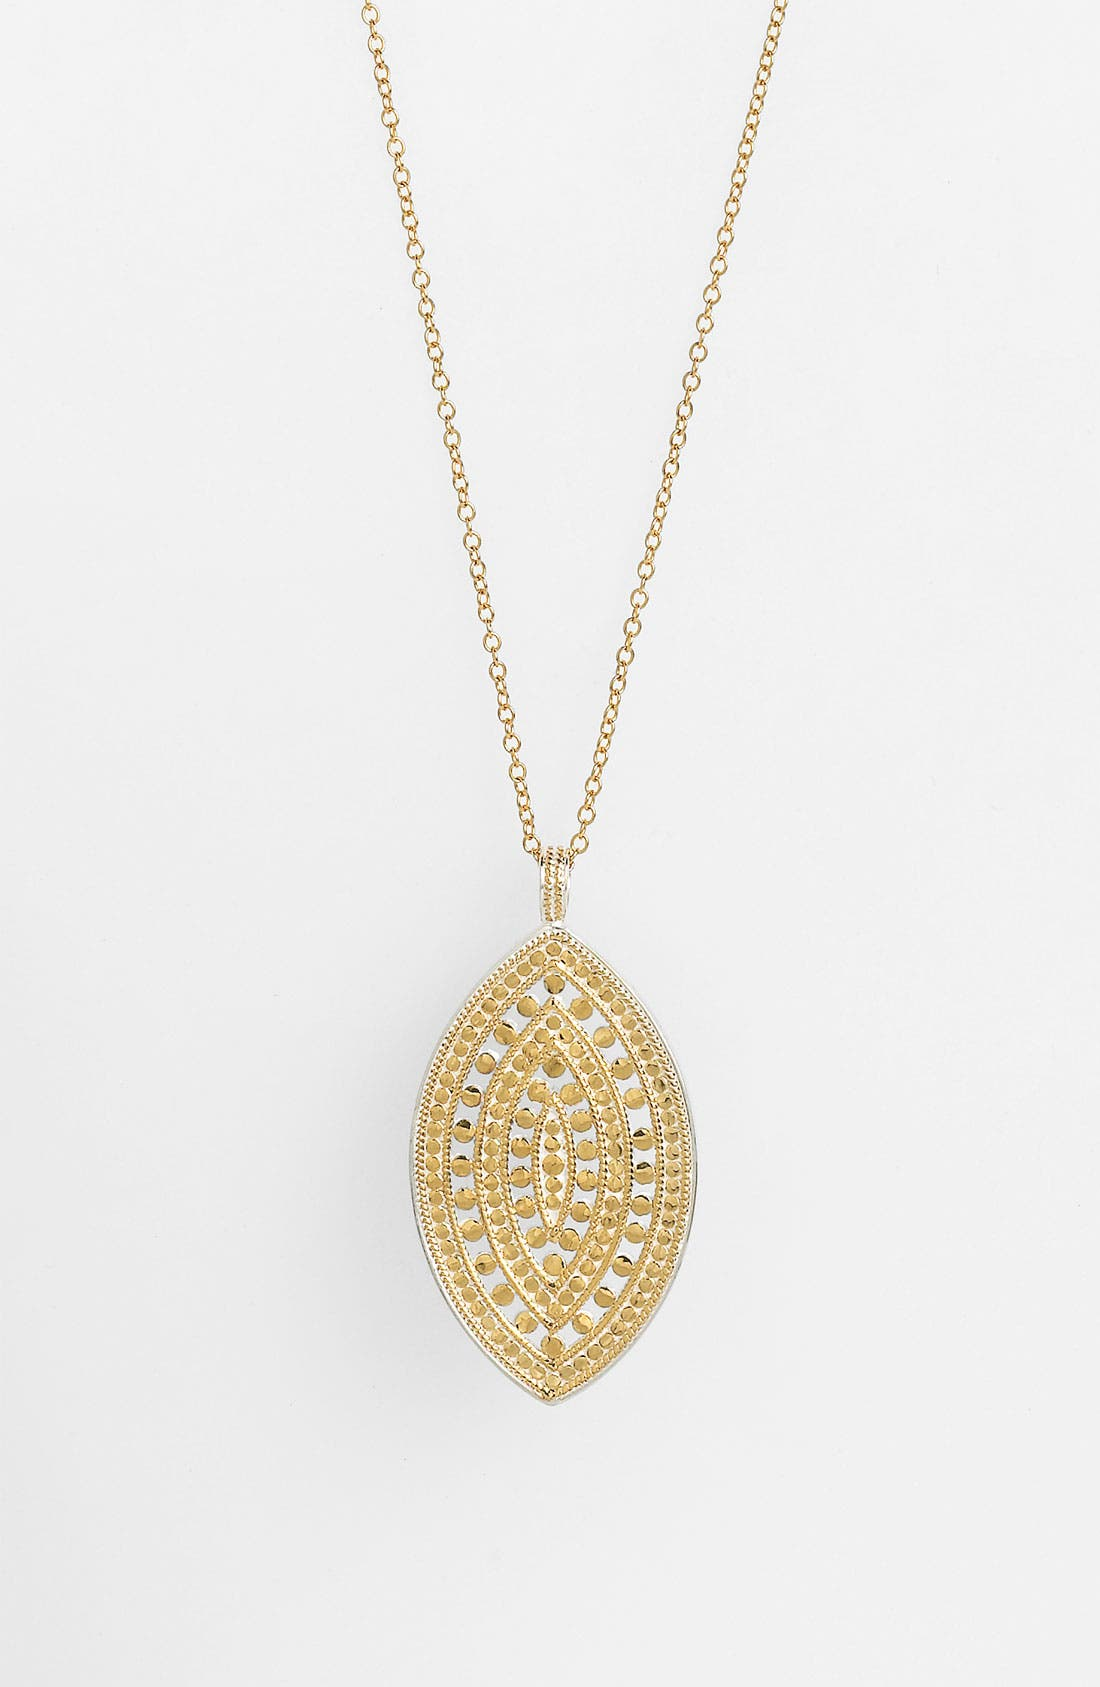 Main Image - Anna Beck 'Lombok' Long Leaf Pendant Necklace